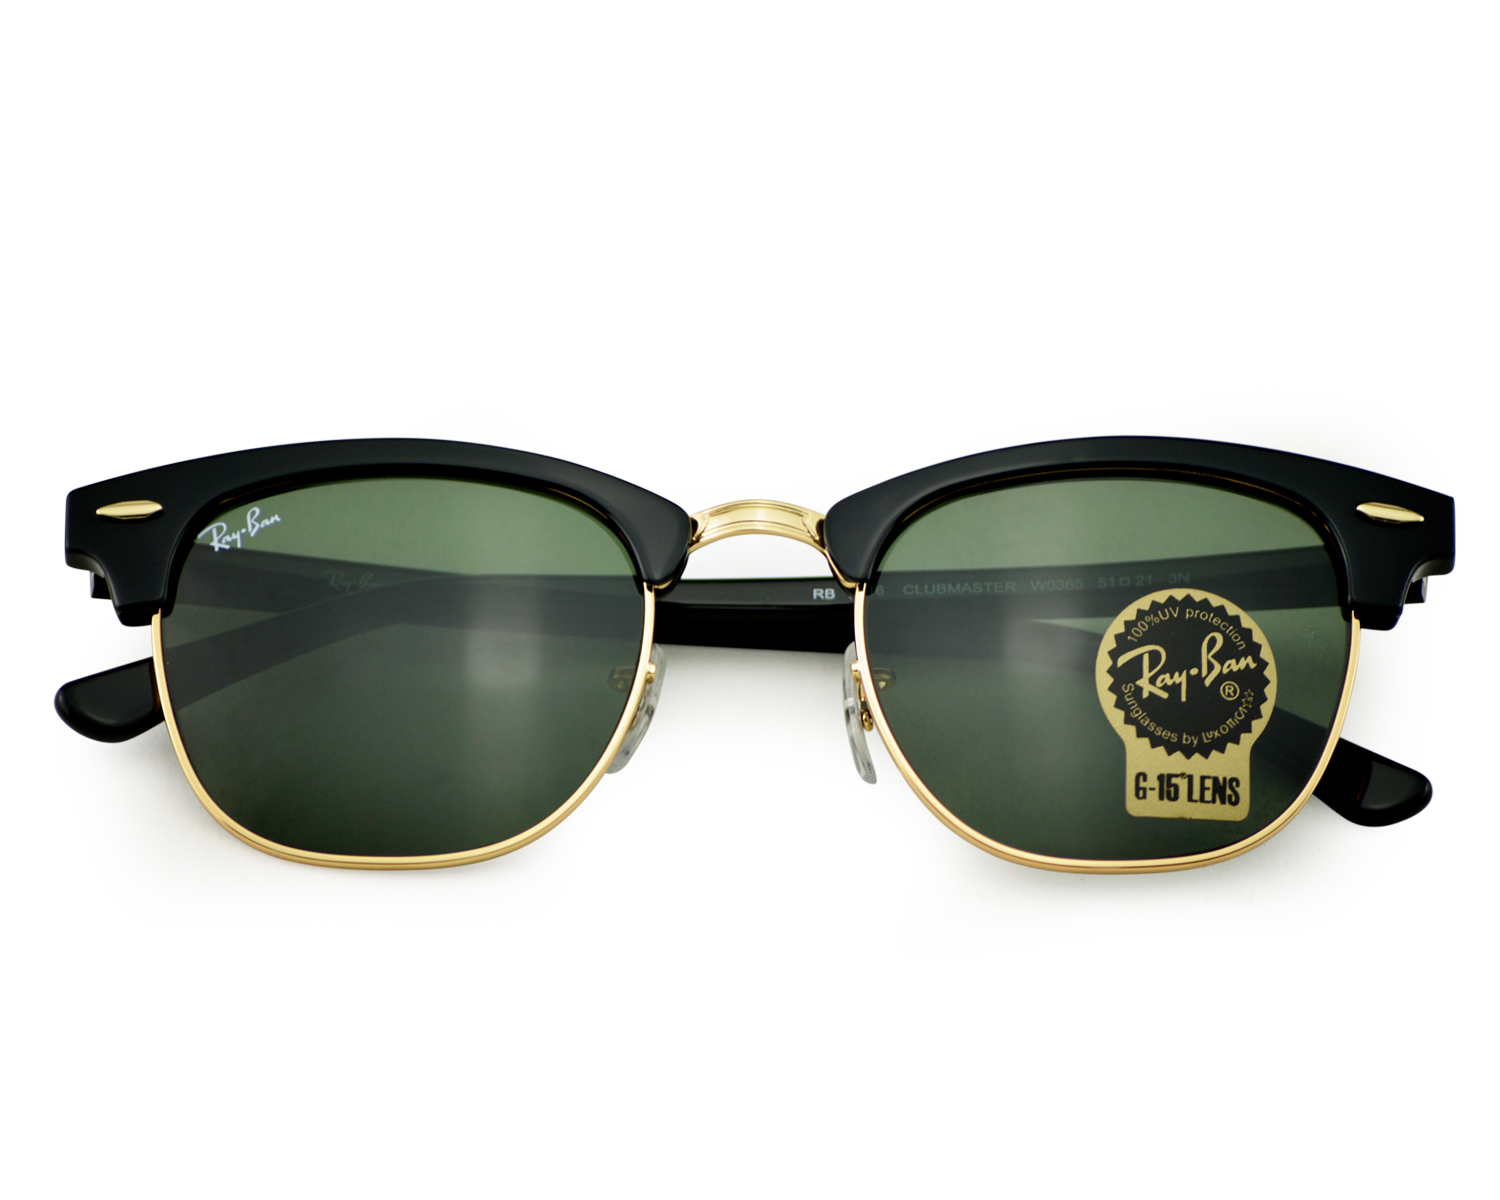 6f618ad7dde8e Ray-Ban RB3016 Clubmaster Classic W0365 Black Frame Green Classic G-15  Lenses Unisex Sunglasses 51mm